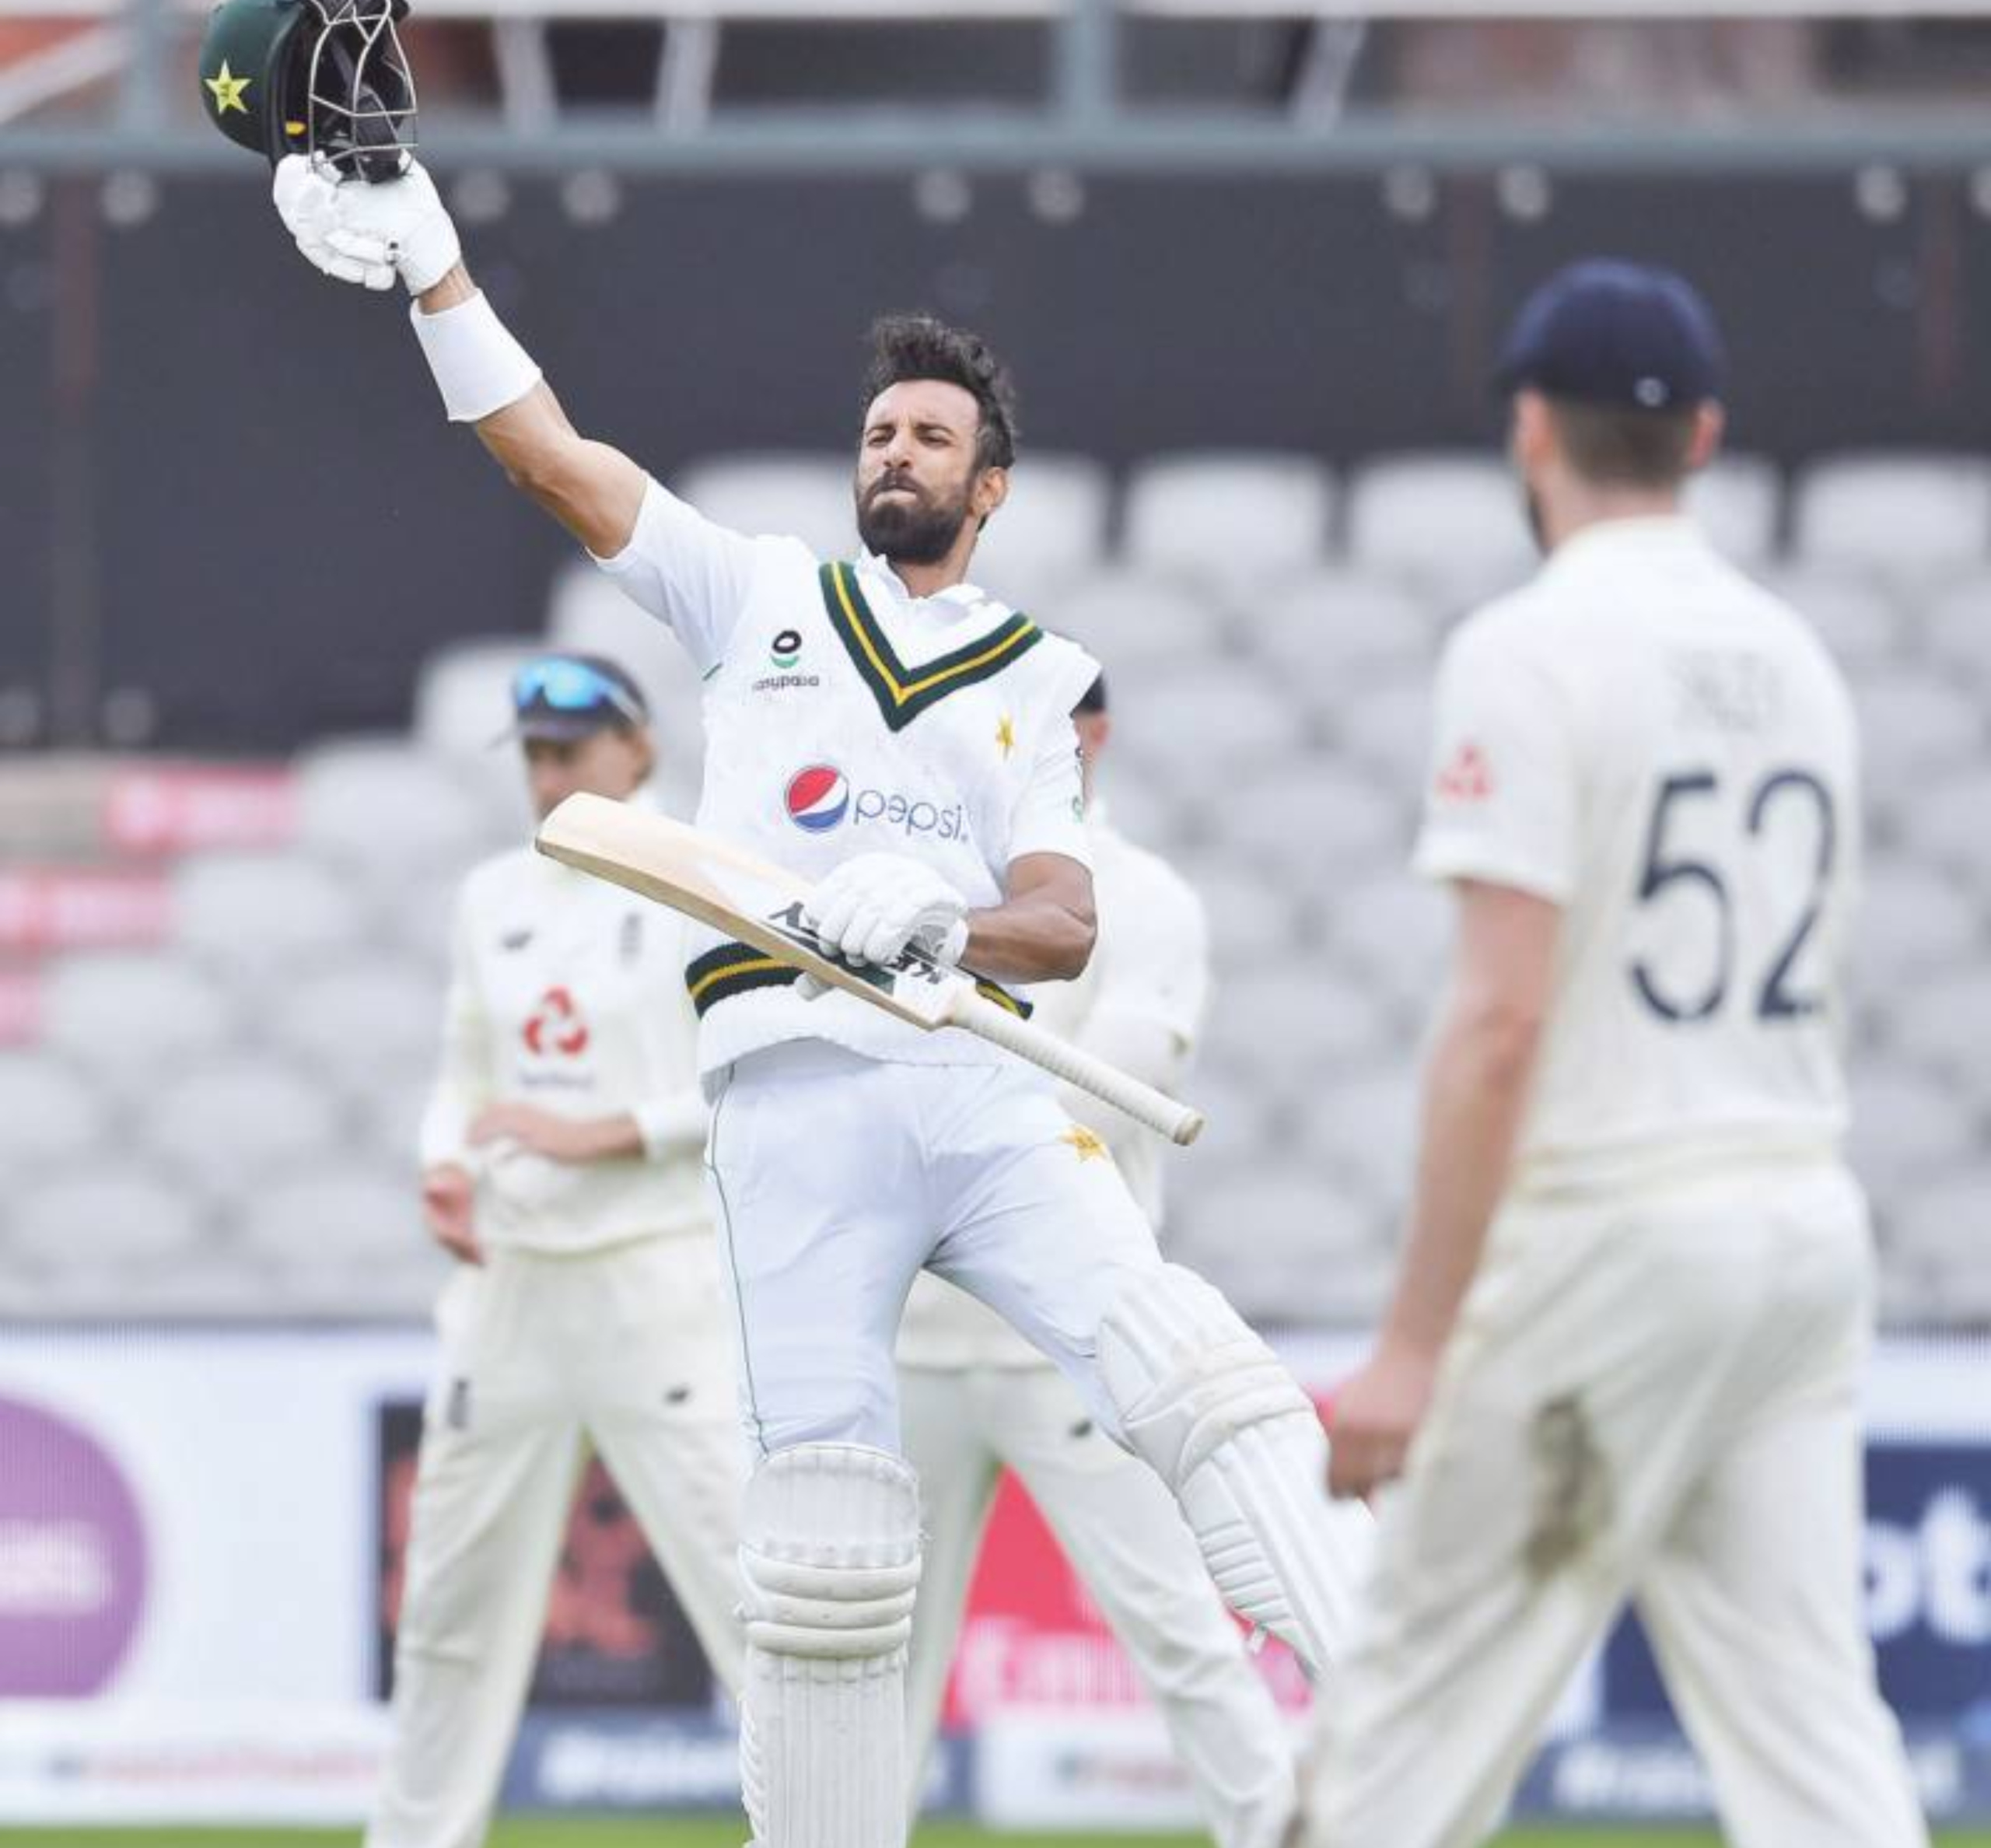 Shan Masood: The youngsters deserve to see foreign cricketers in Pakistan